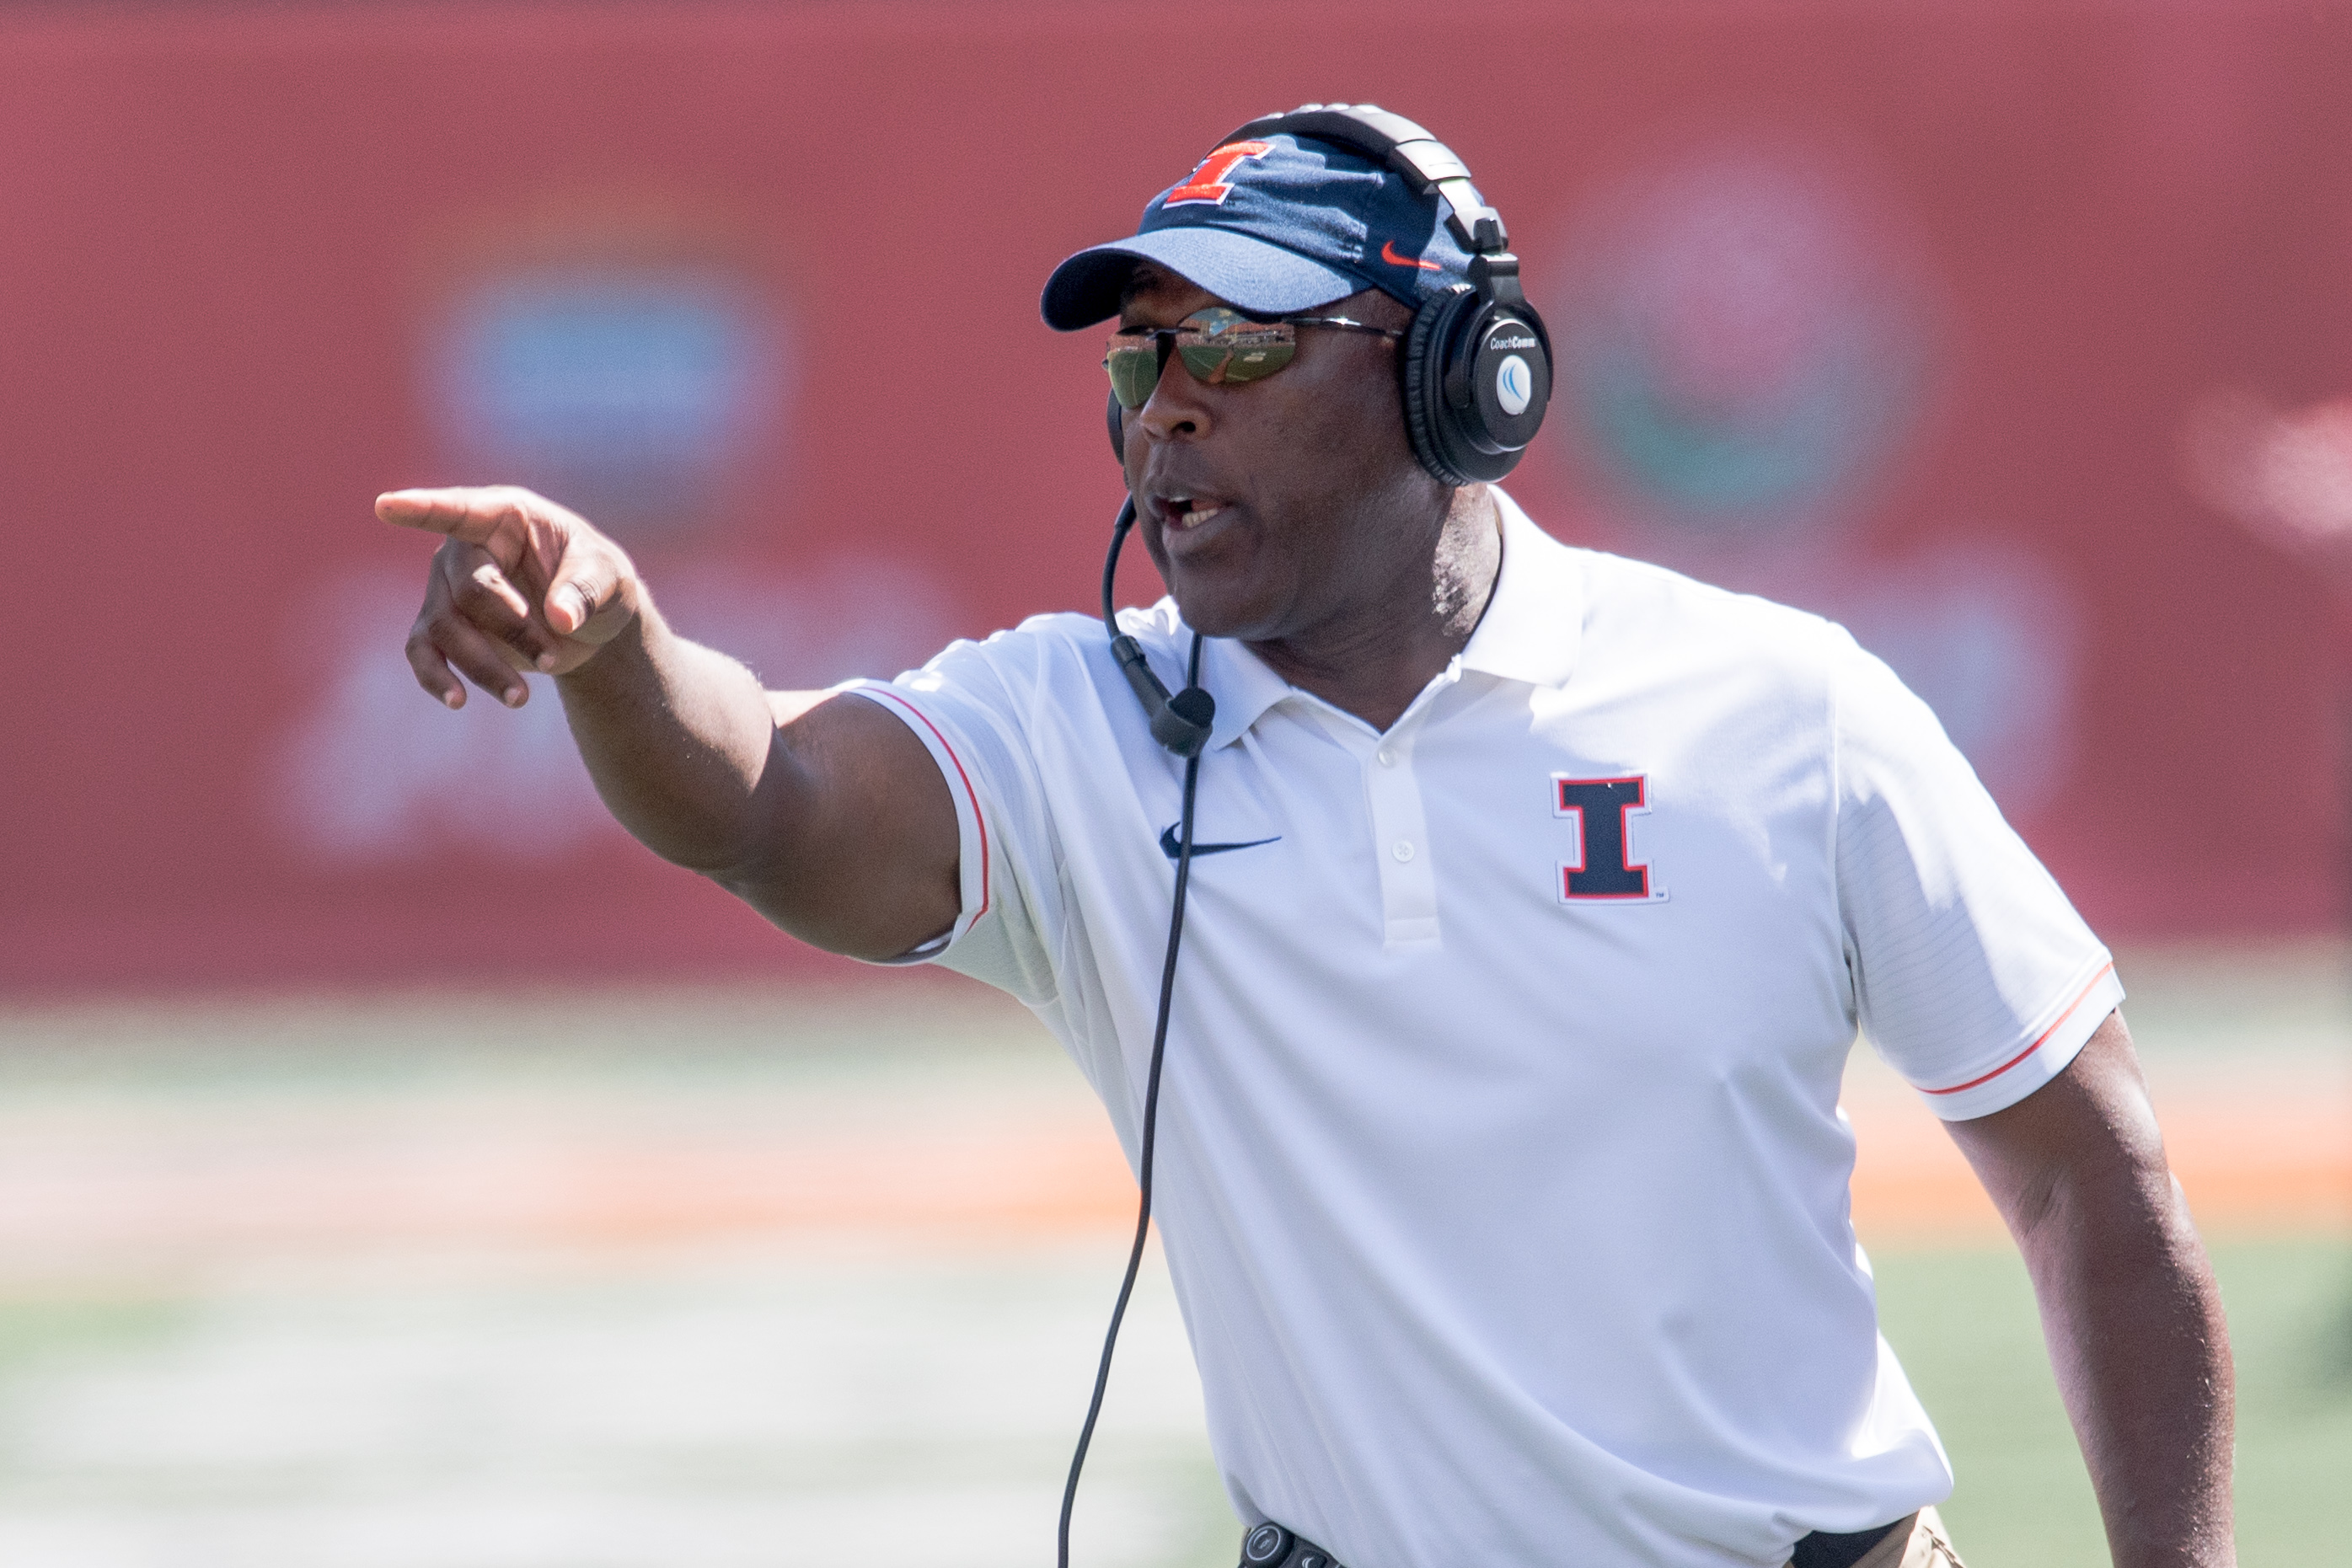 Illinois head coach Lovie Smith shouts during the first quarter of an NCAA college football game against Murray State Saturday, Sept. 3, 2016 at Memorial Stadium in Champaign, Ill.  (AP Photo/Bradley Leeb)